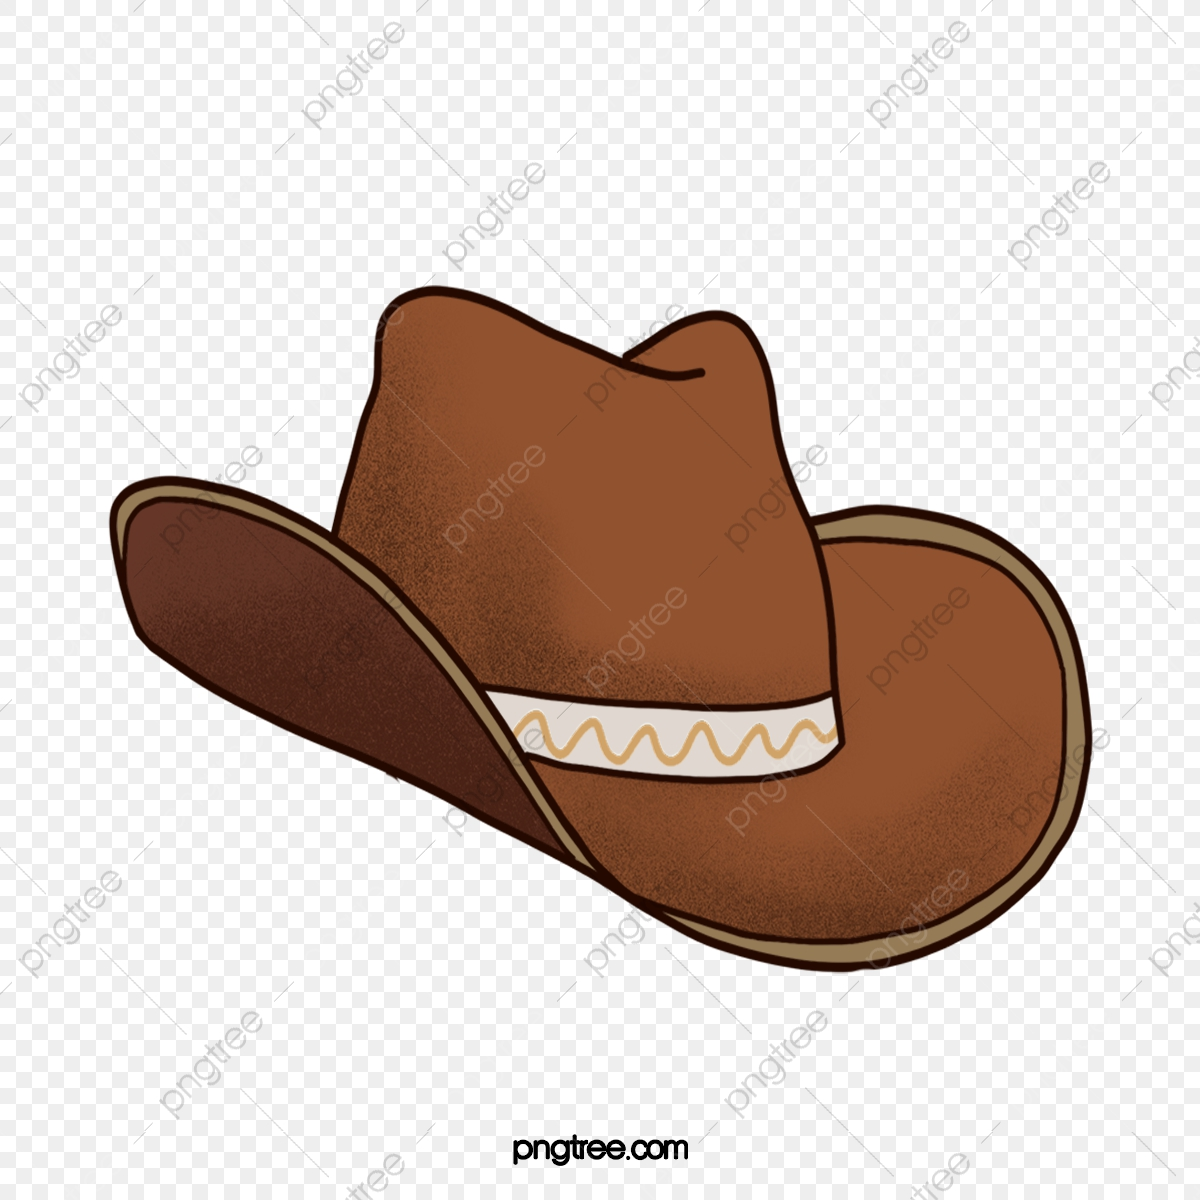 Cowboy Boots And Hat Png – For design cowboy boot and western hat.black graphic.